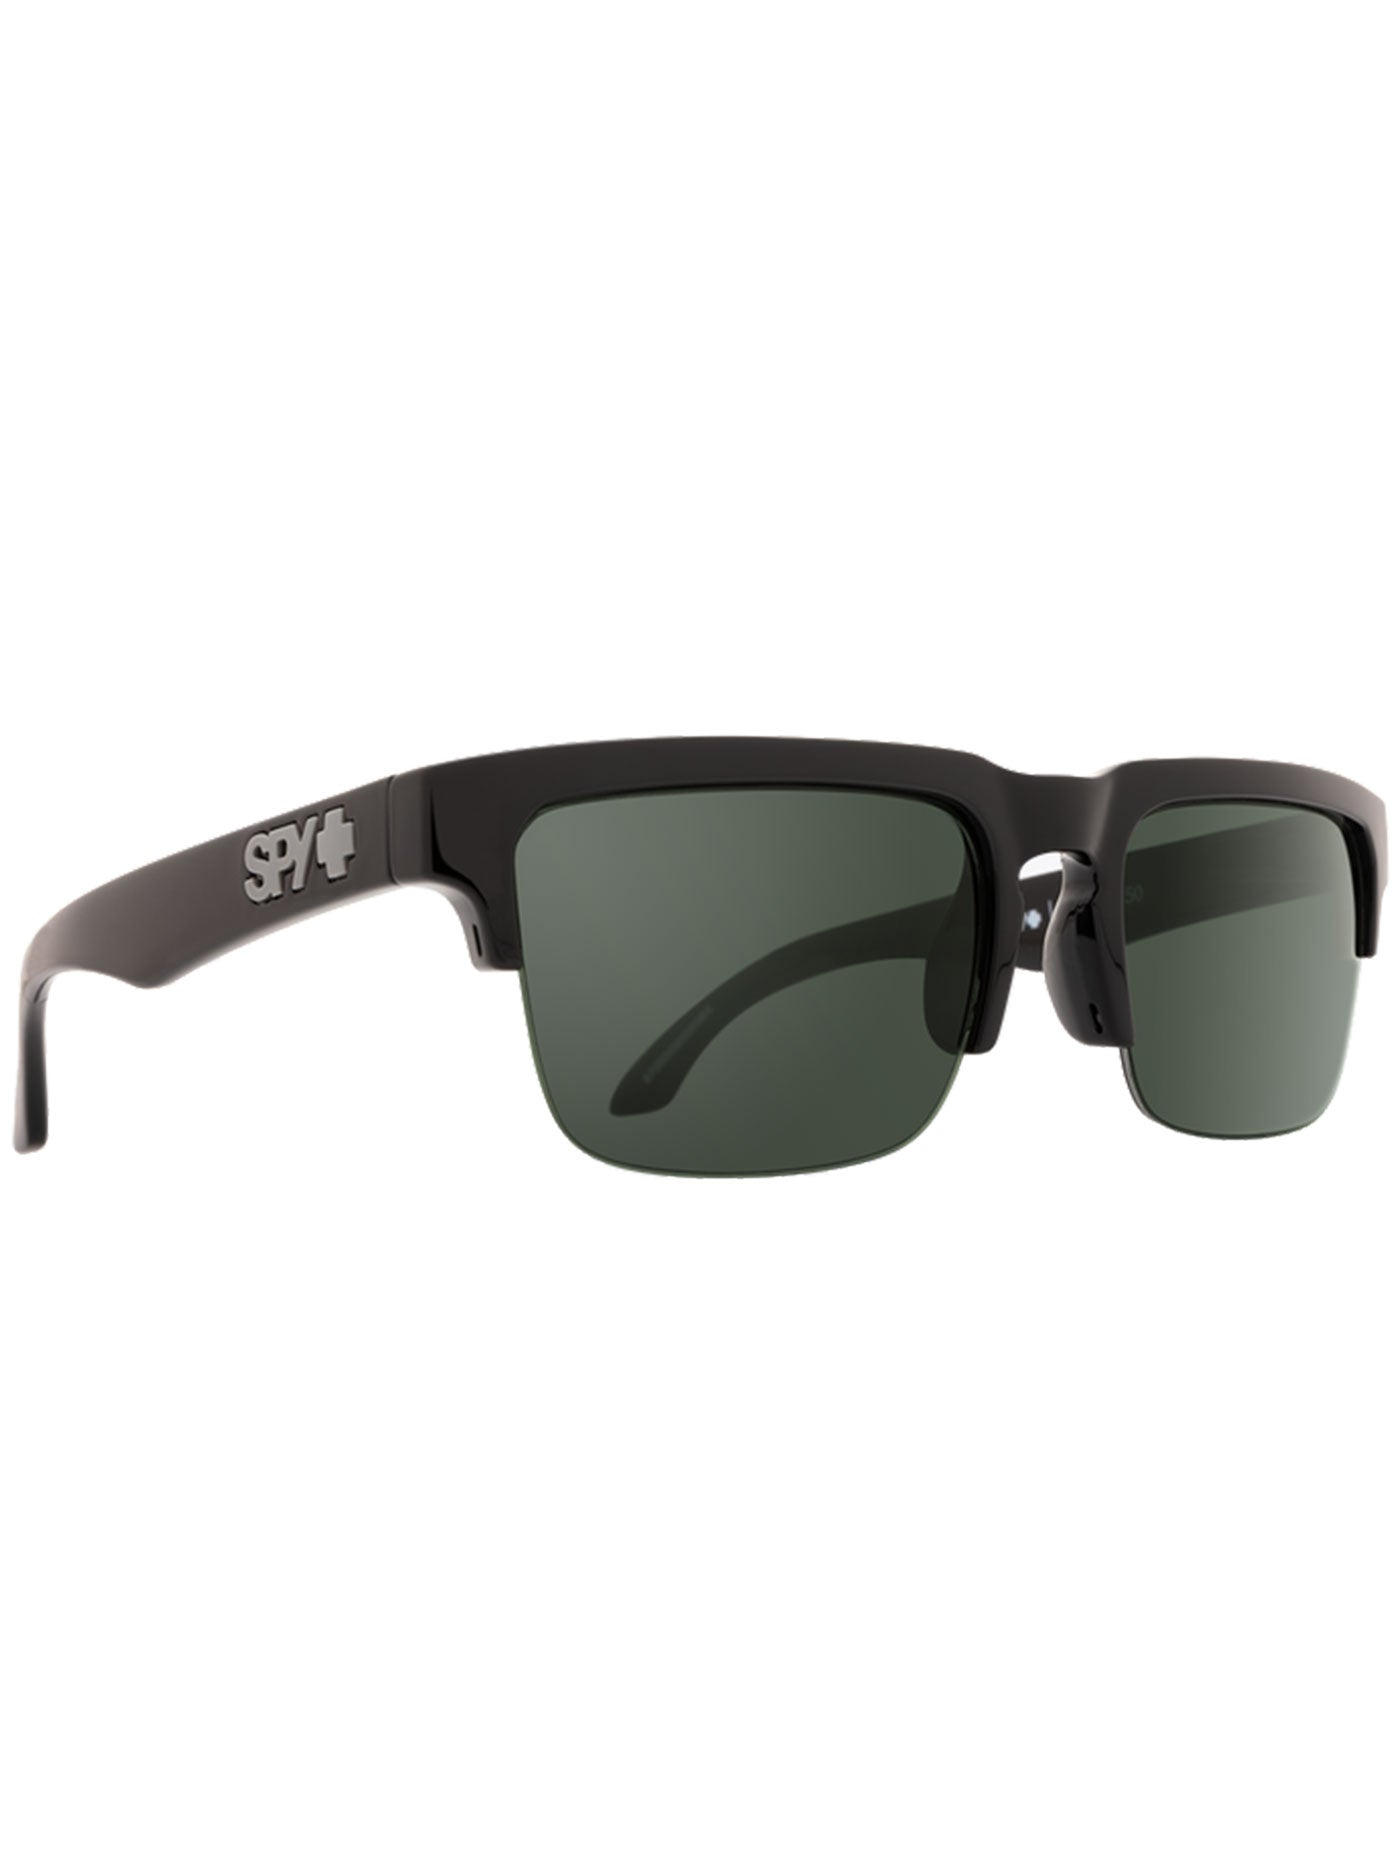 Helm 5050 Black Sunglasses